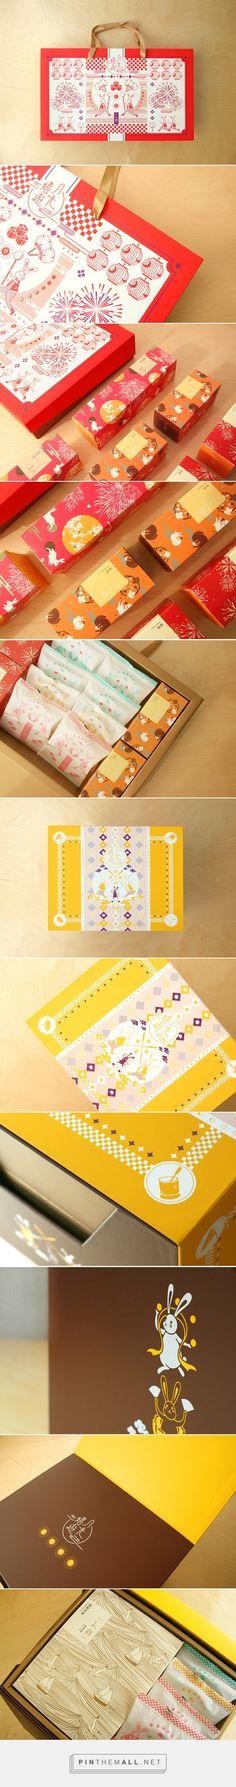 I really like the use of small vector images in this packaging. The patterns in this design are amazing!